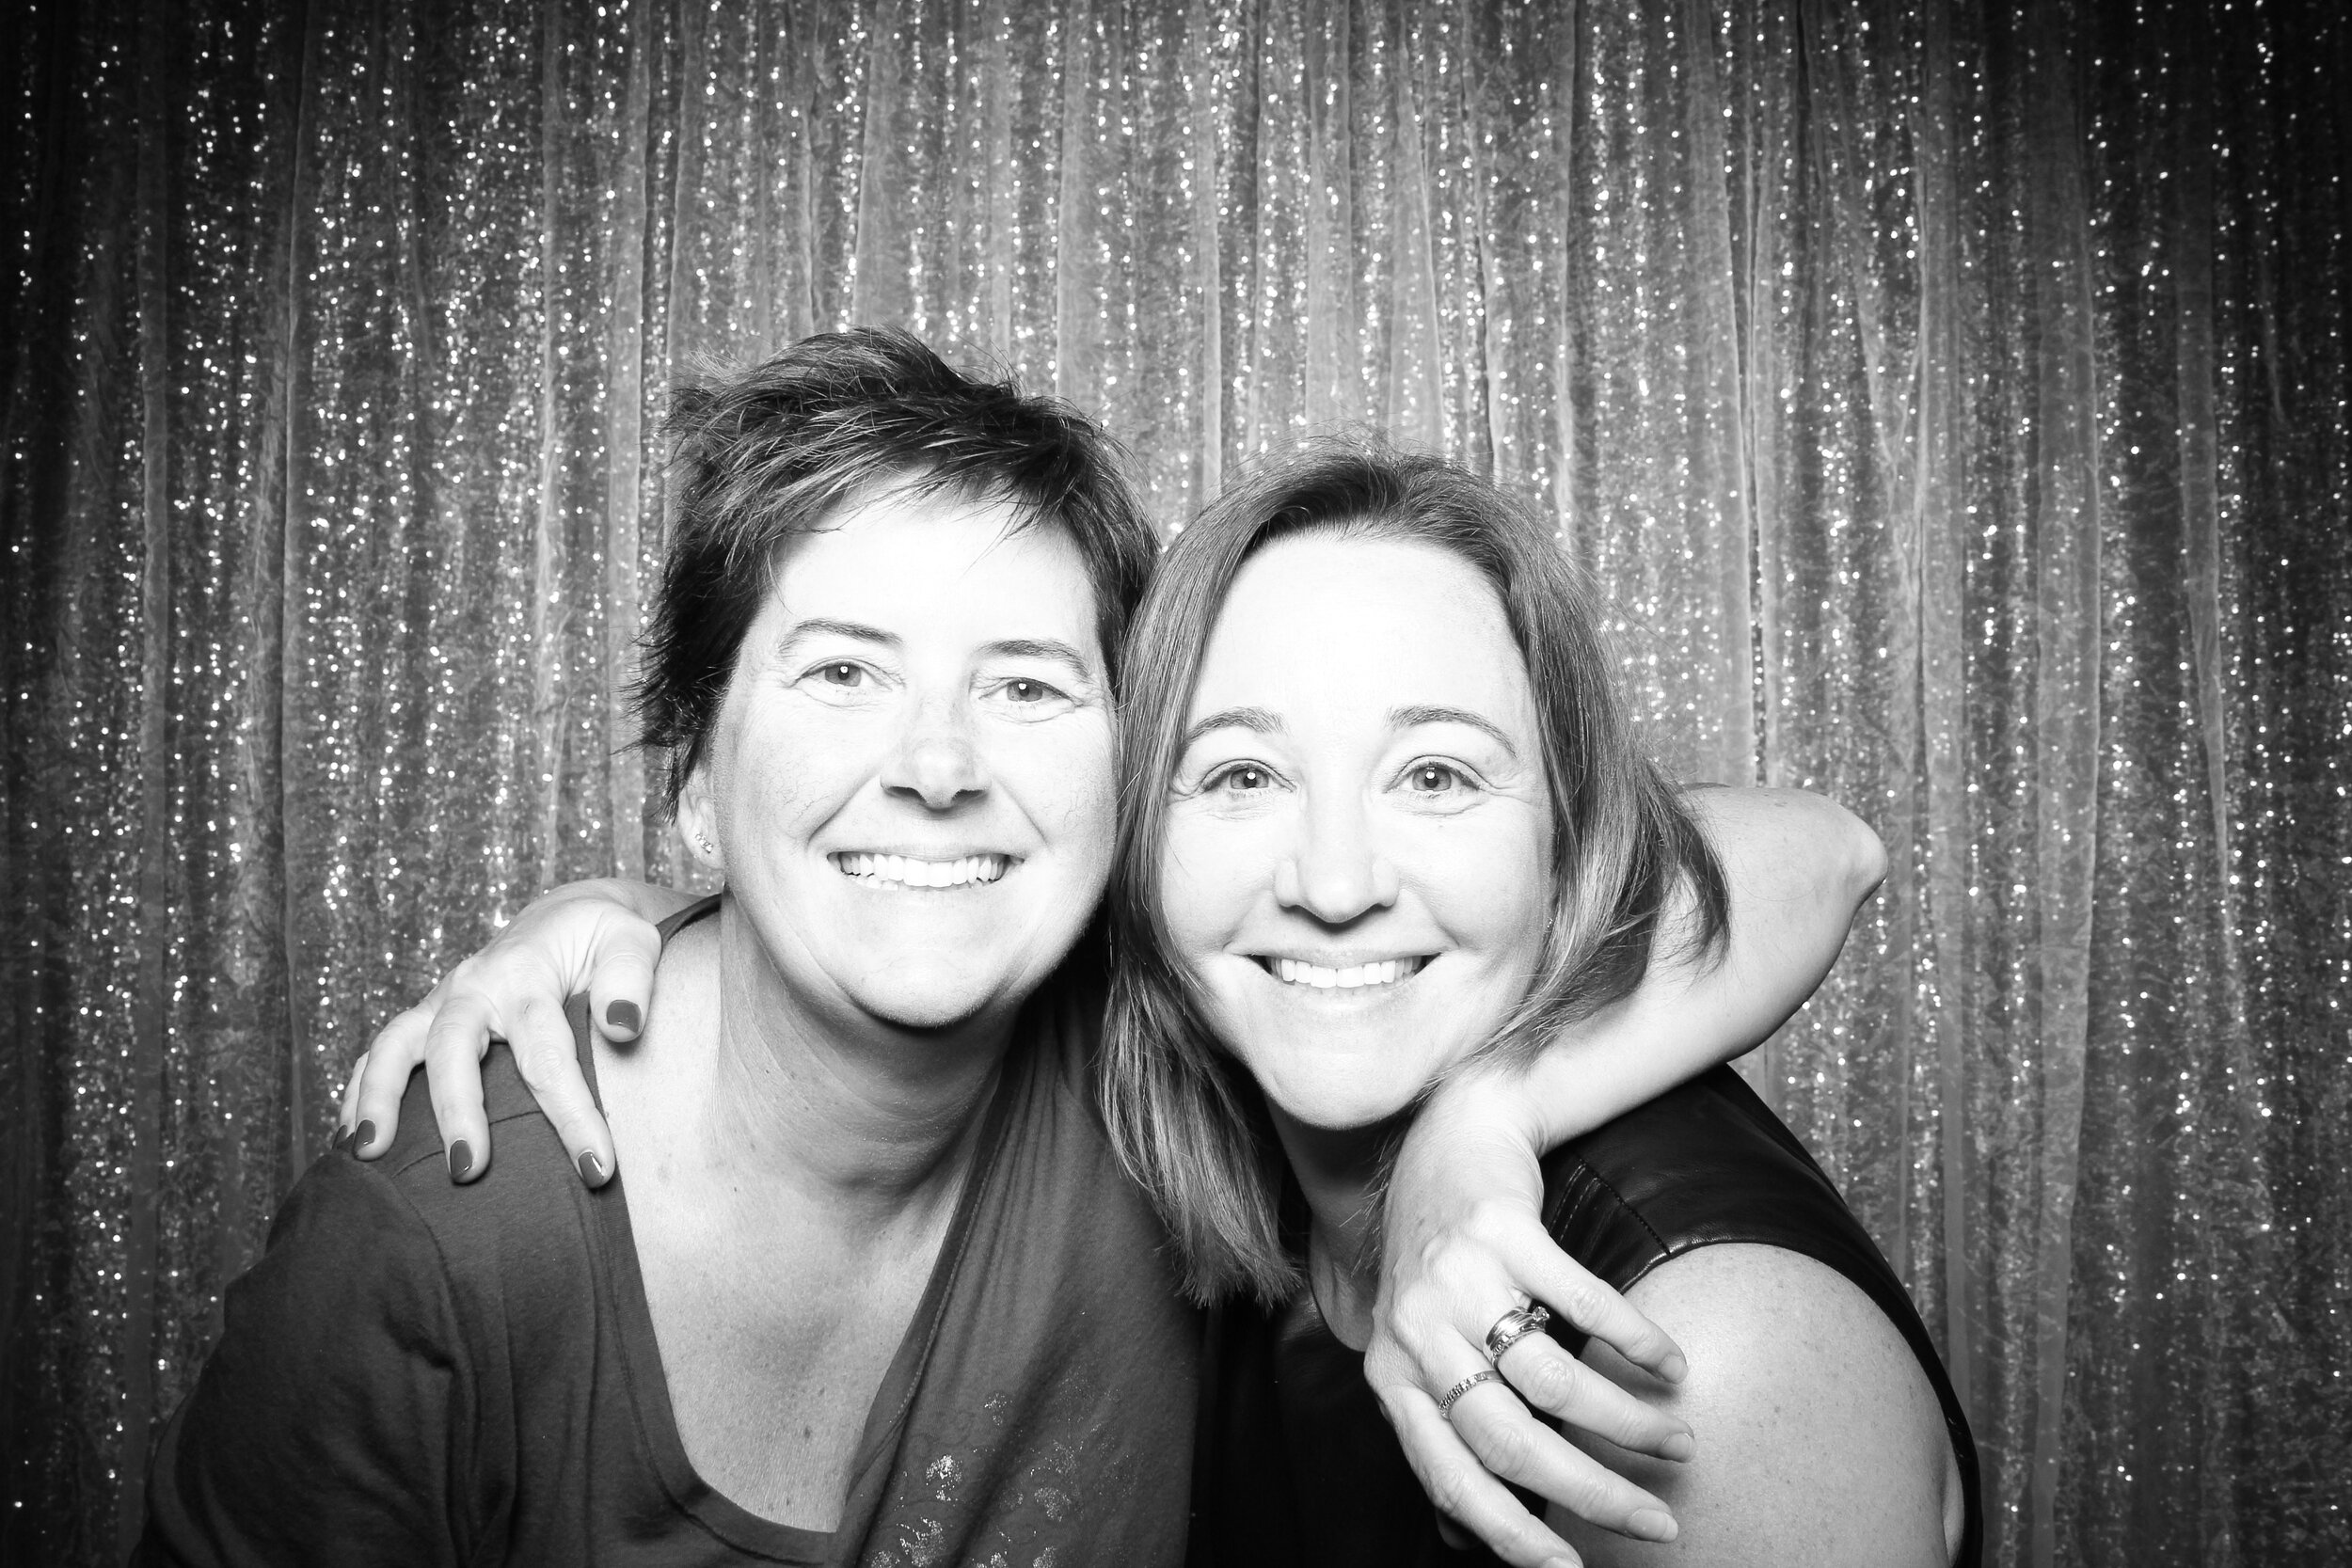 Chicago_Vintage_Wedding_Photobooth_House_of_Blues_18.jpg